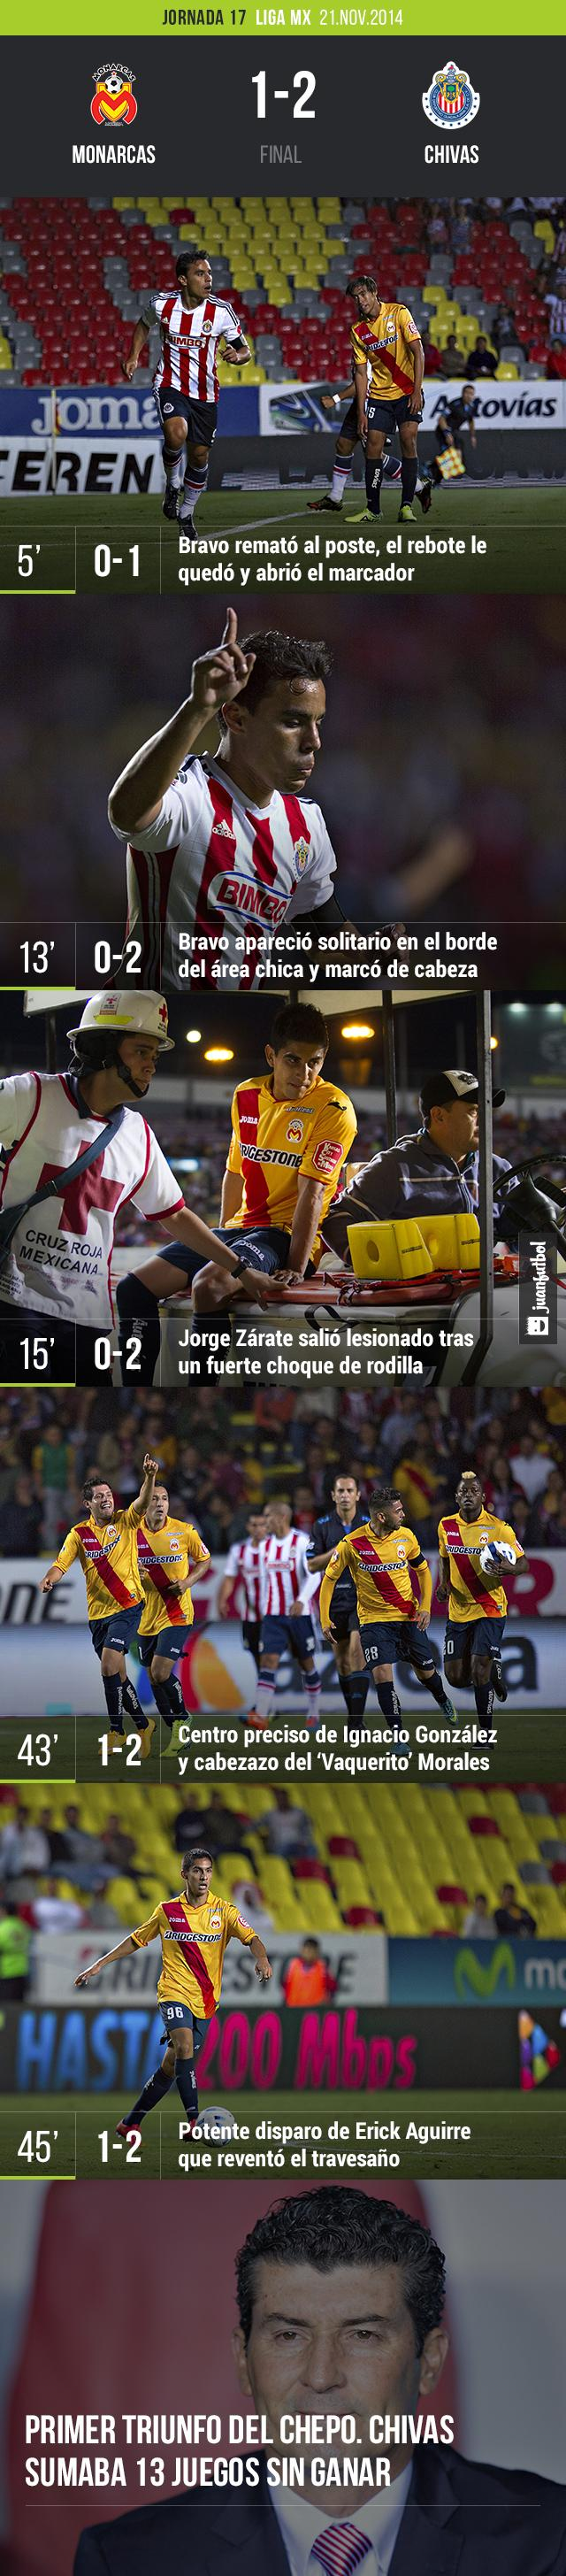 Monarcas vs. Chivas